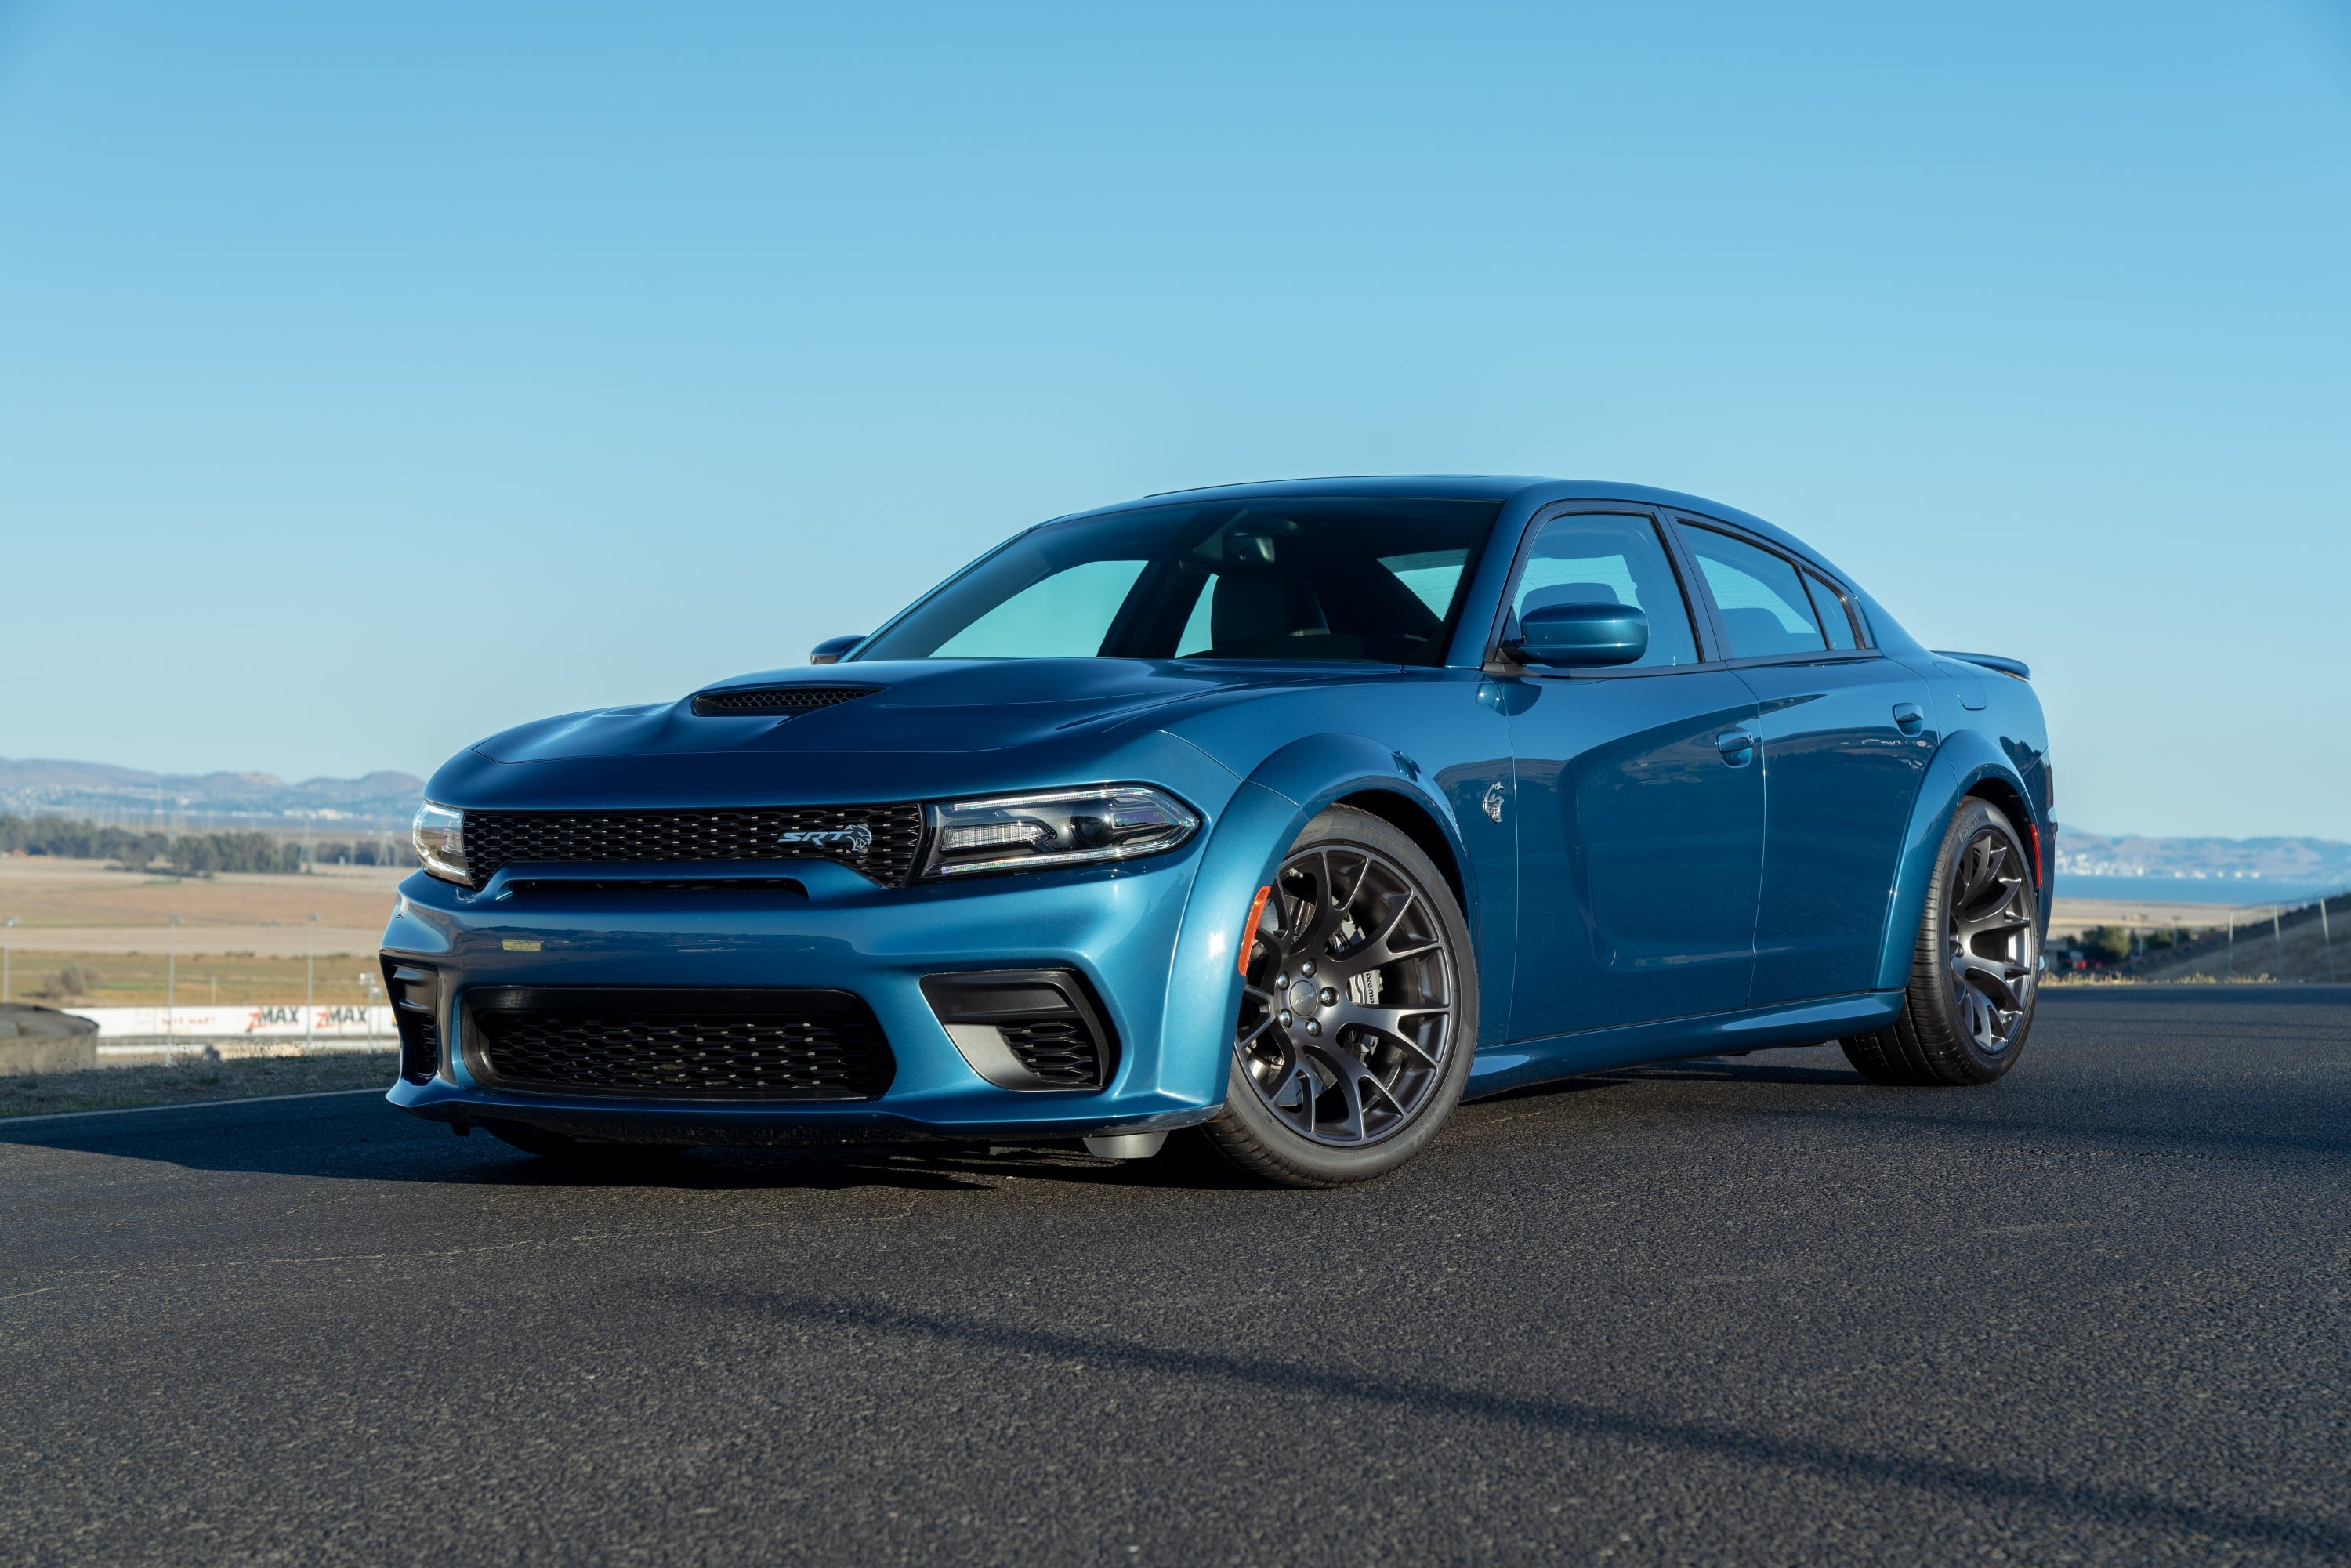 dodge charger scat pack near me The 2 Dodge Charger Hellcat and Scat Pack are examples of the